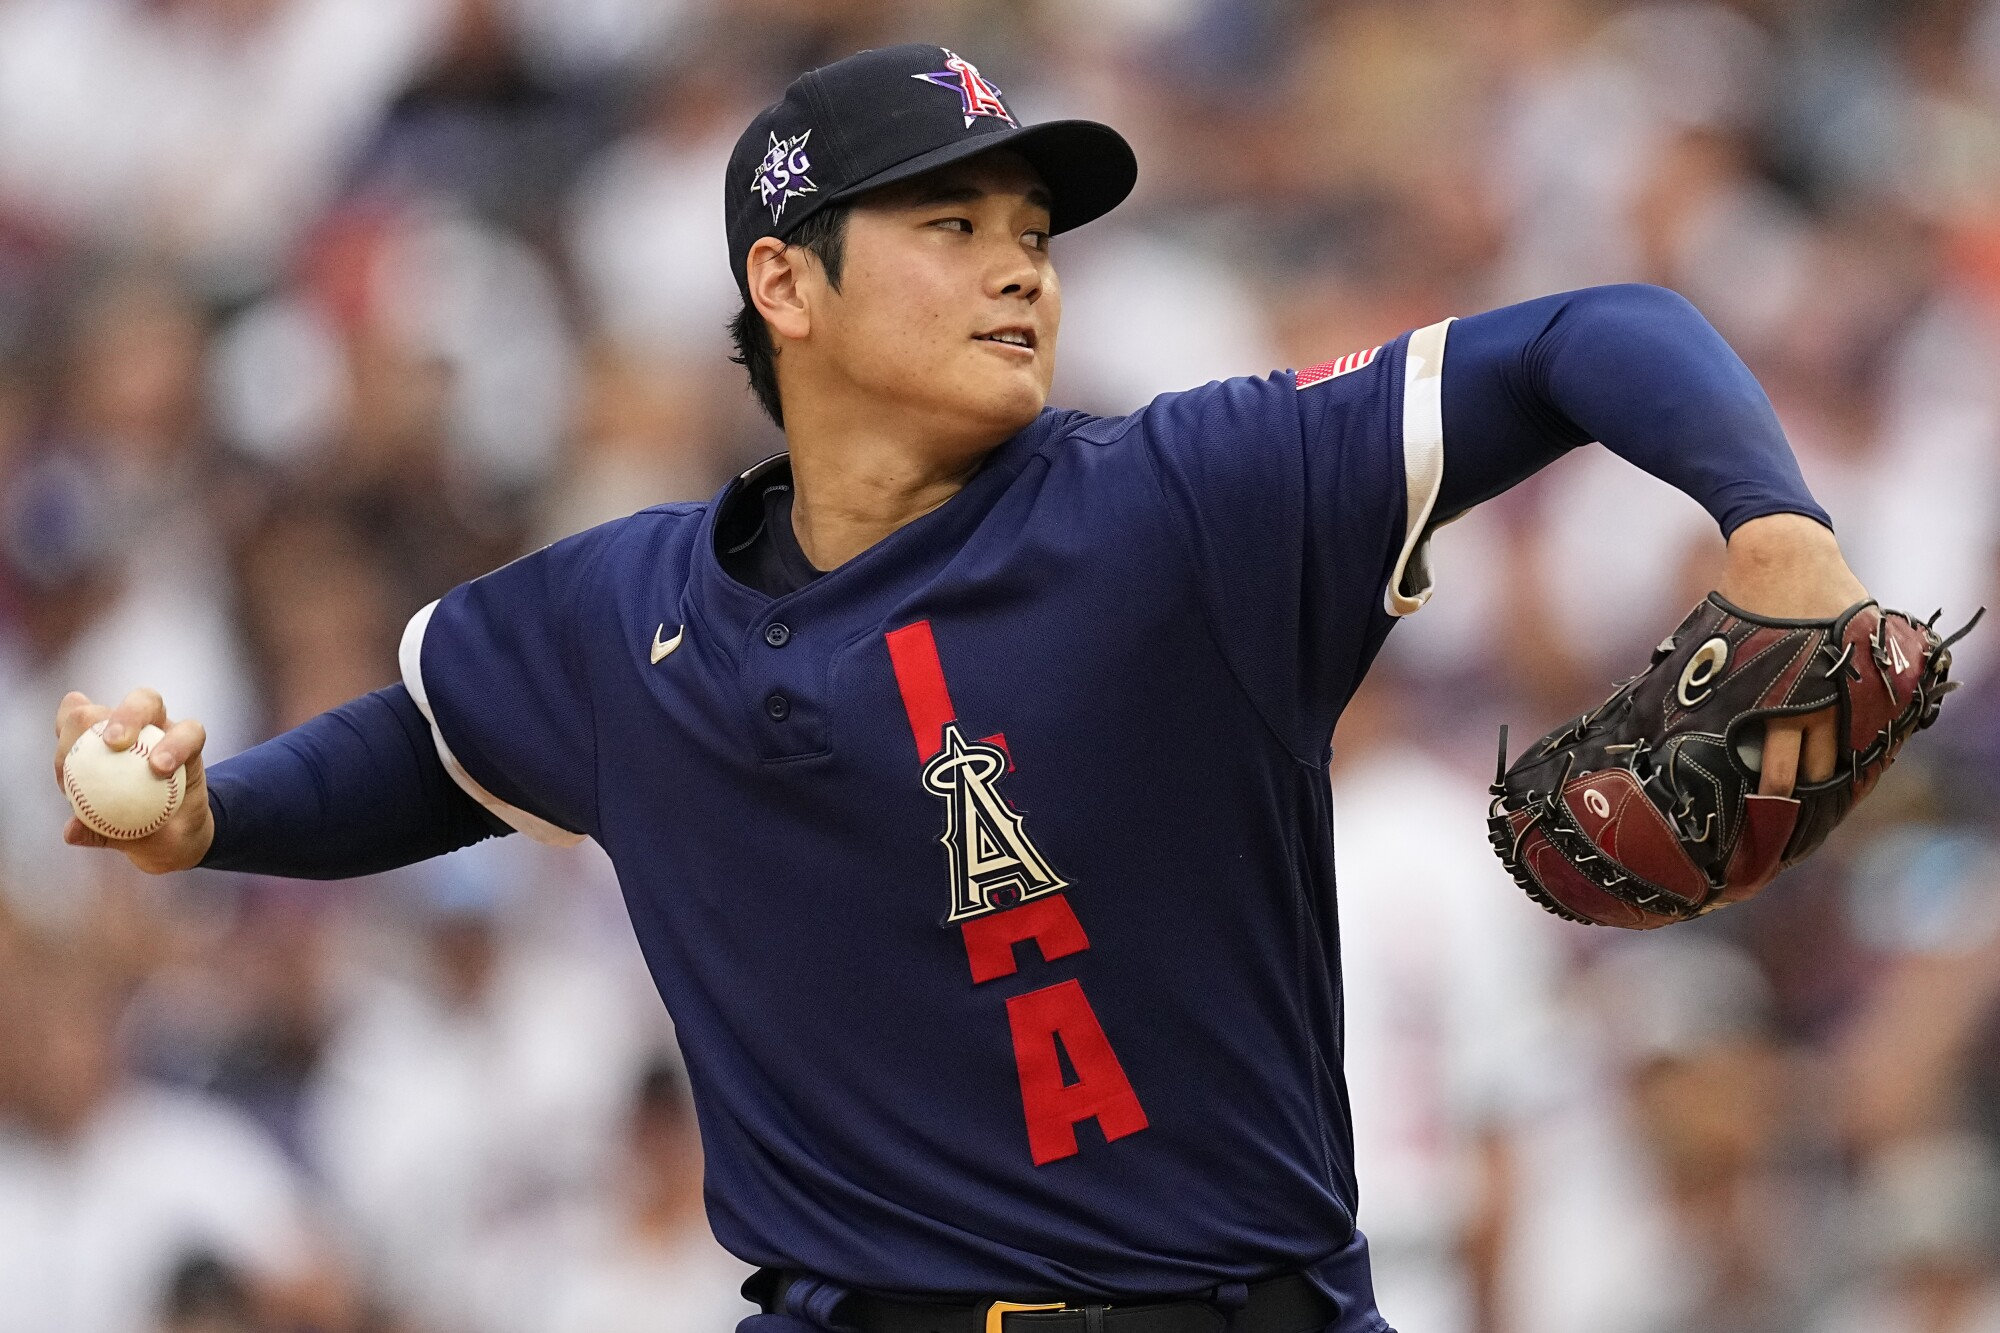 Live coverage of Shohei Ohtani at the MLB all-star game - Los Angeles Times